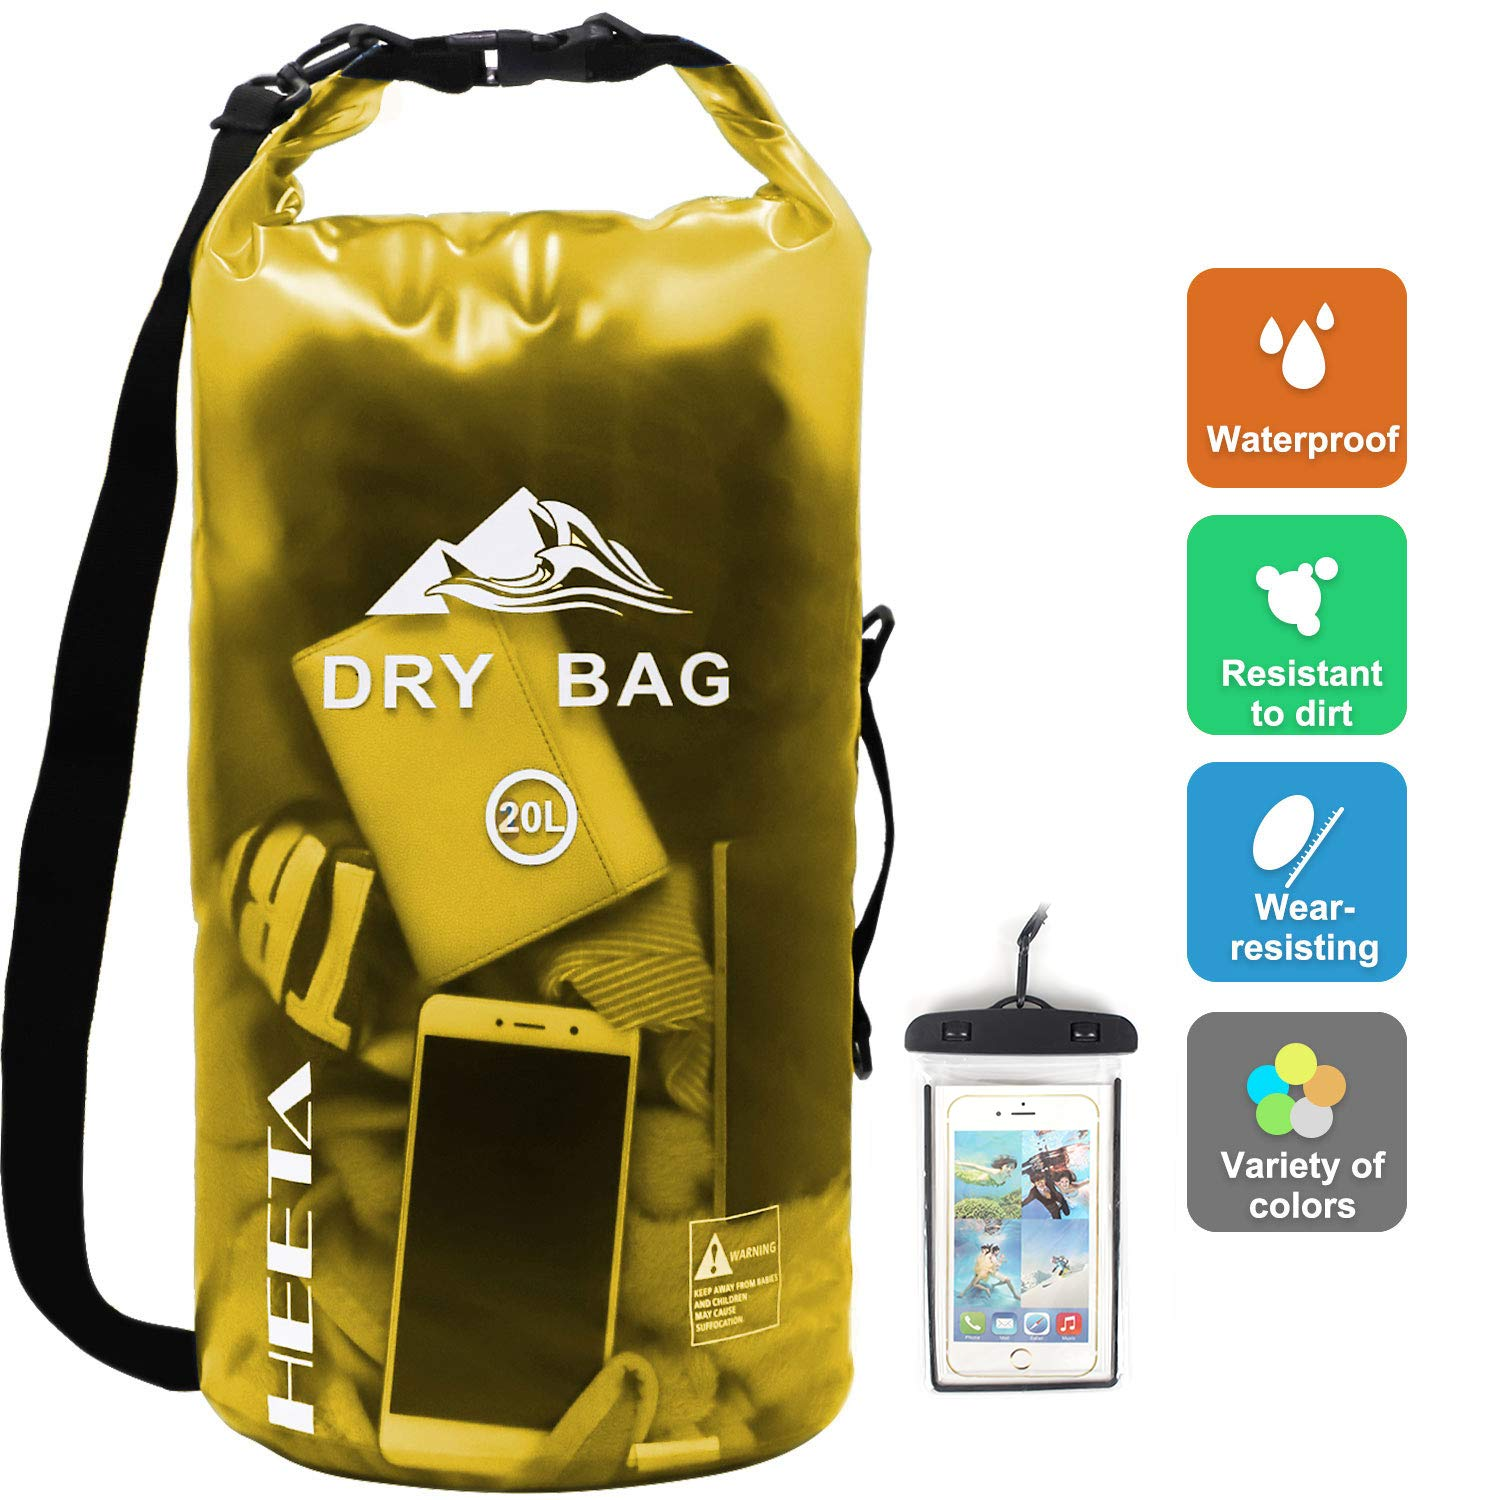 HEETA Waterproof Dry Bag for Women Men, Roll Top Lightweight Dry Storage Bag Backpack with Phone Case for Travel, Swimming, Boating, Kayaking, Camping and Beach, Transparent Yellow 20L by HEETA